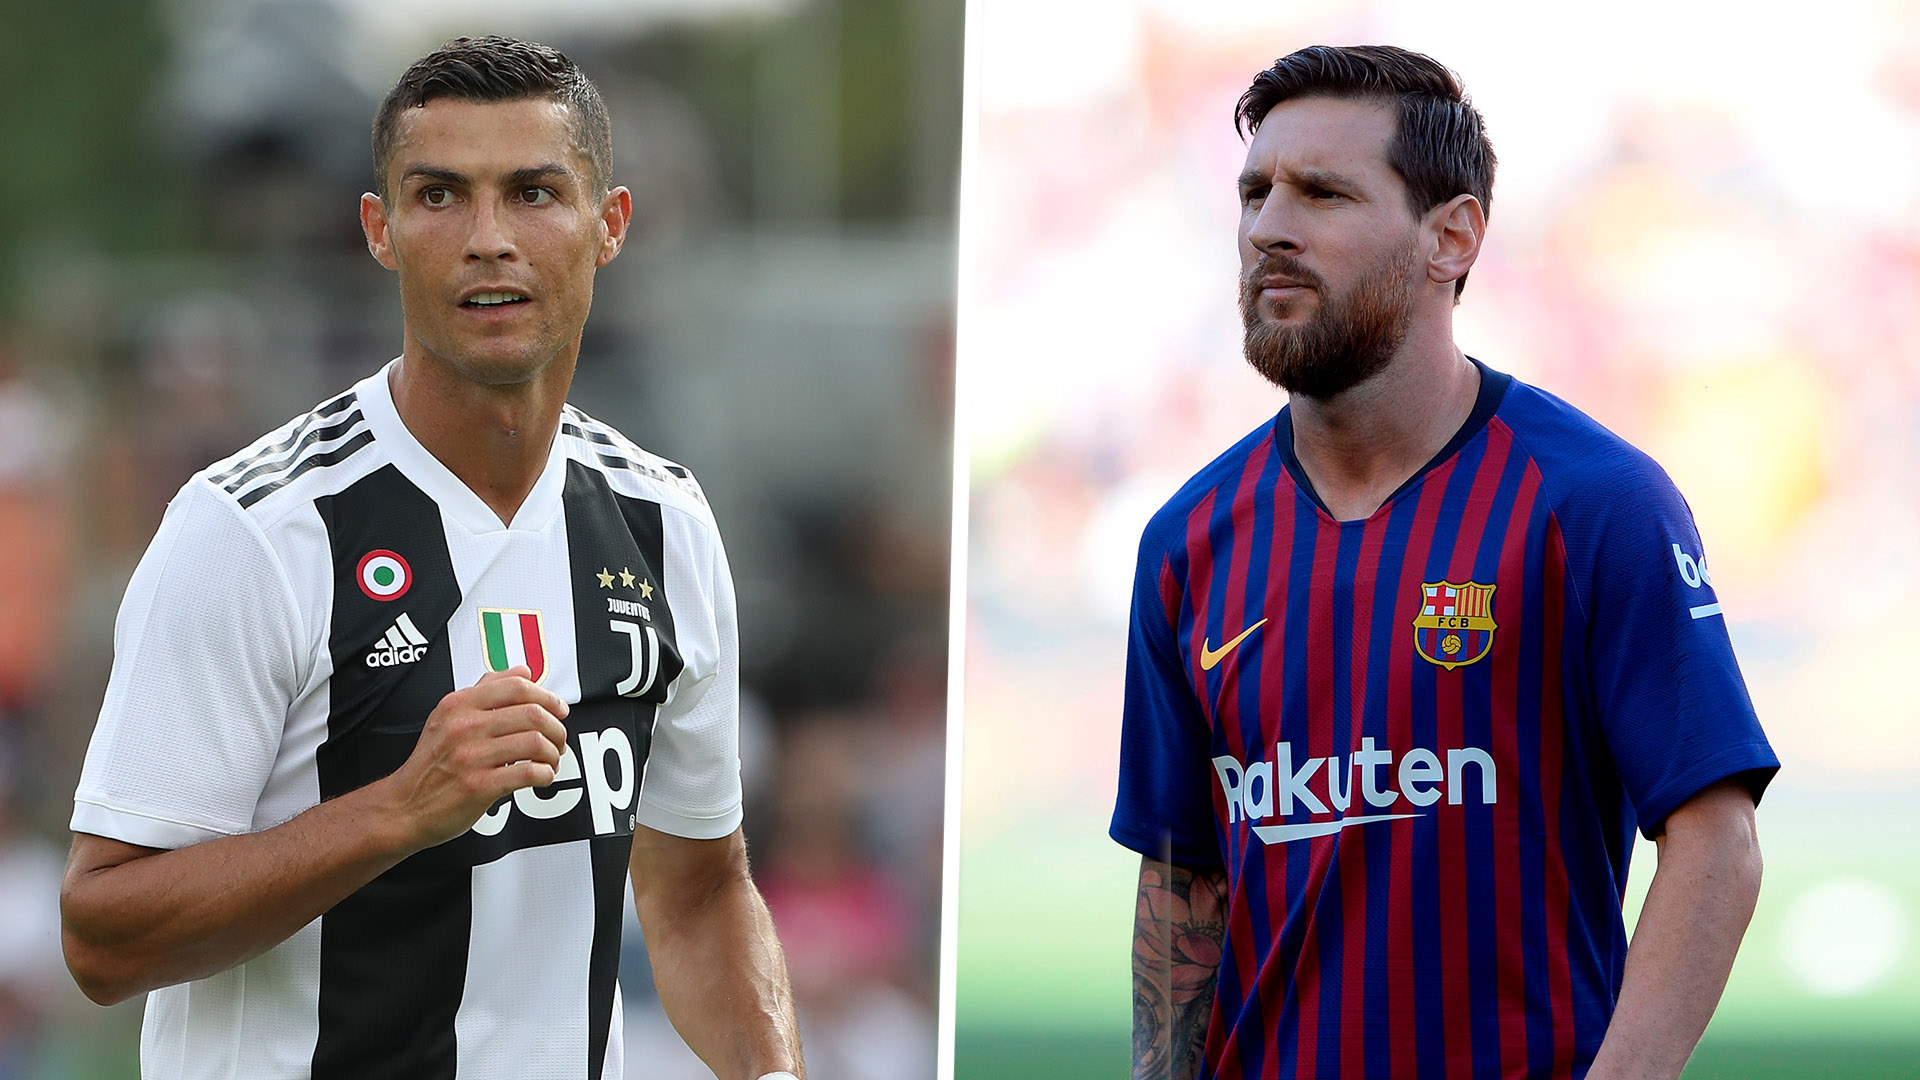 Federation Internationale de Football Association 19: Messi, Ronaldo share rating, Salah 27th best player